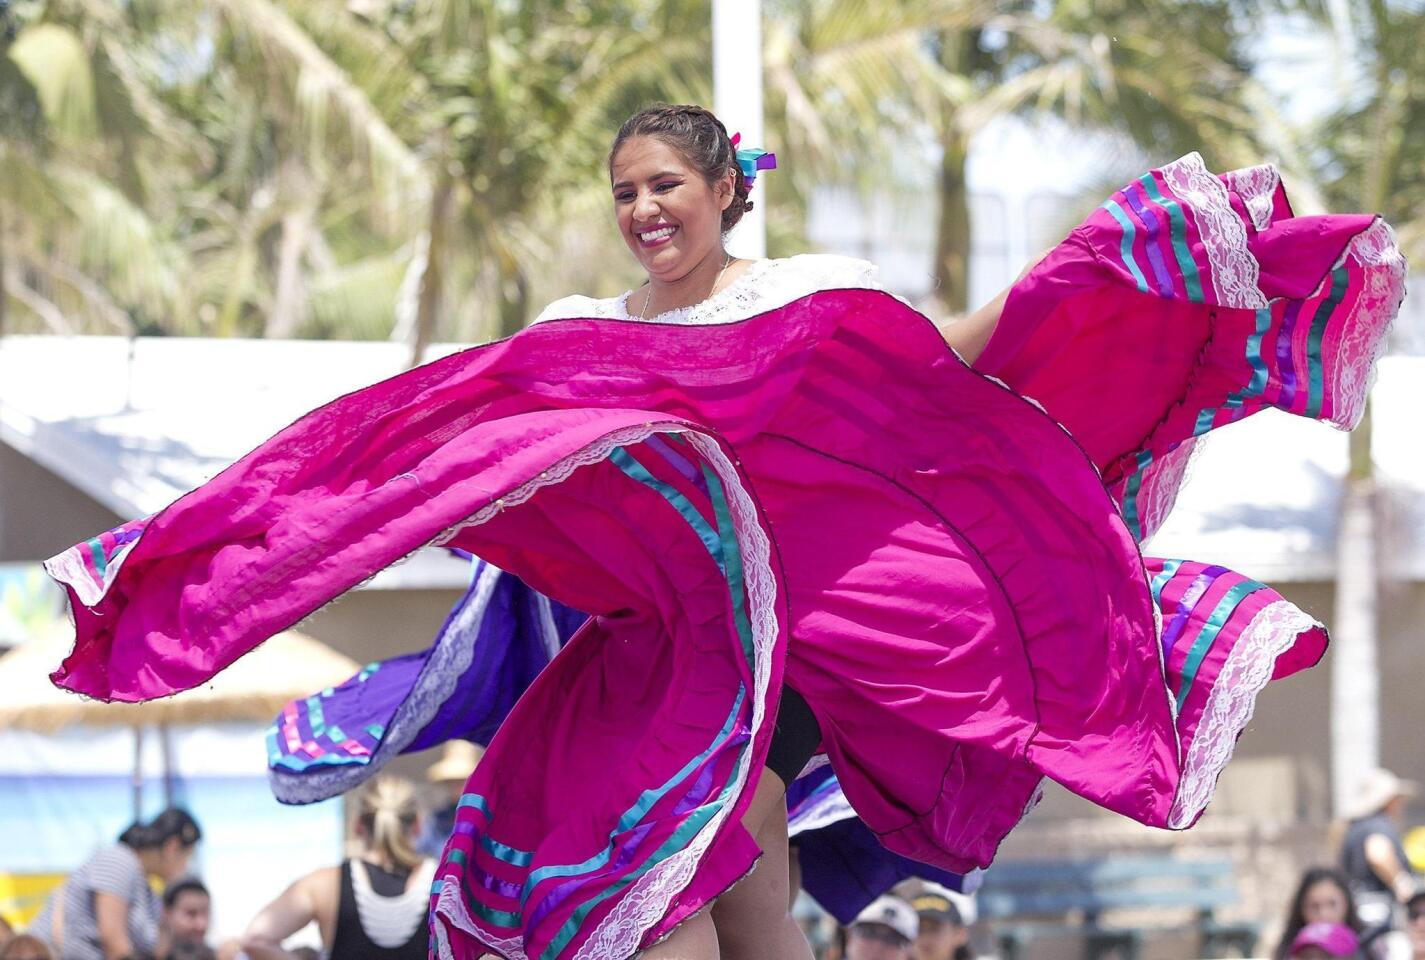 Dallana Salinas performs a traditional ballet folklorico dance during a Save Our Youth musical performance on the Heritage Stage at the Orange County Fair on Wednesday.